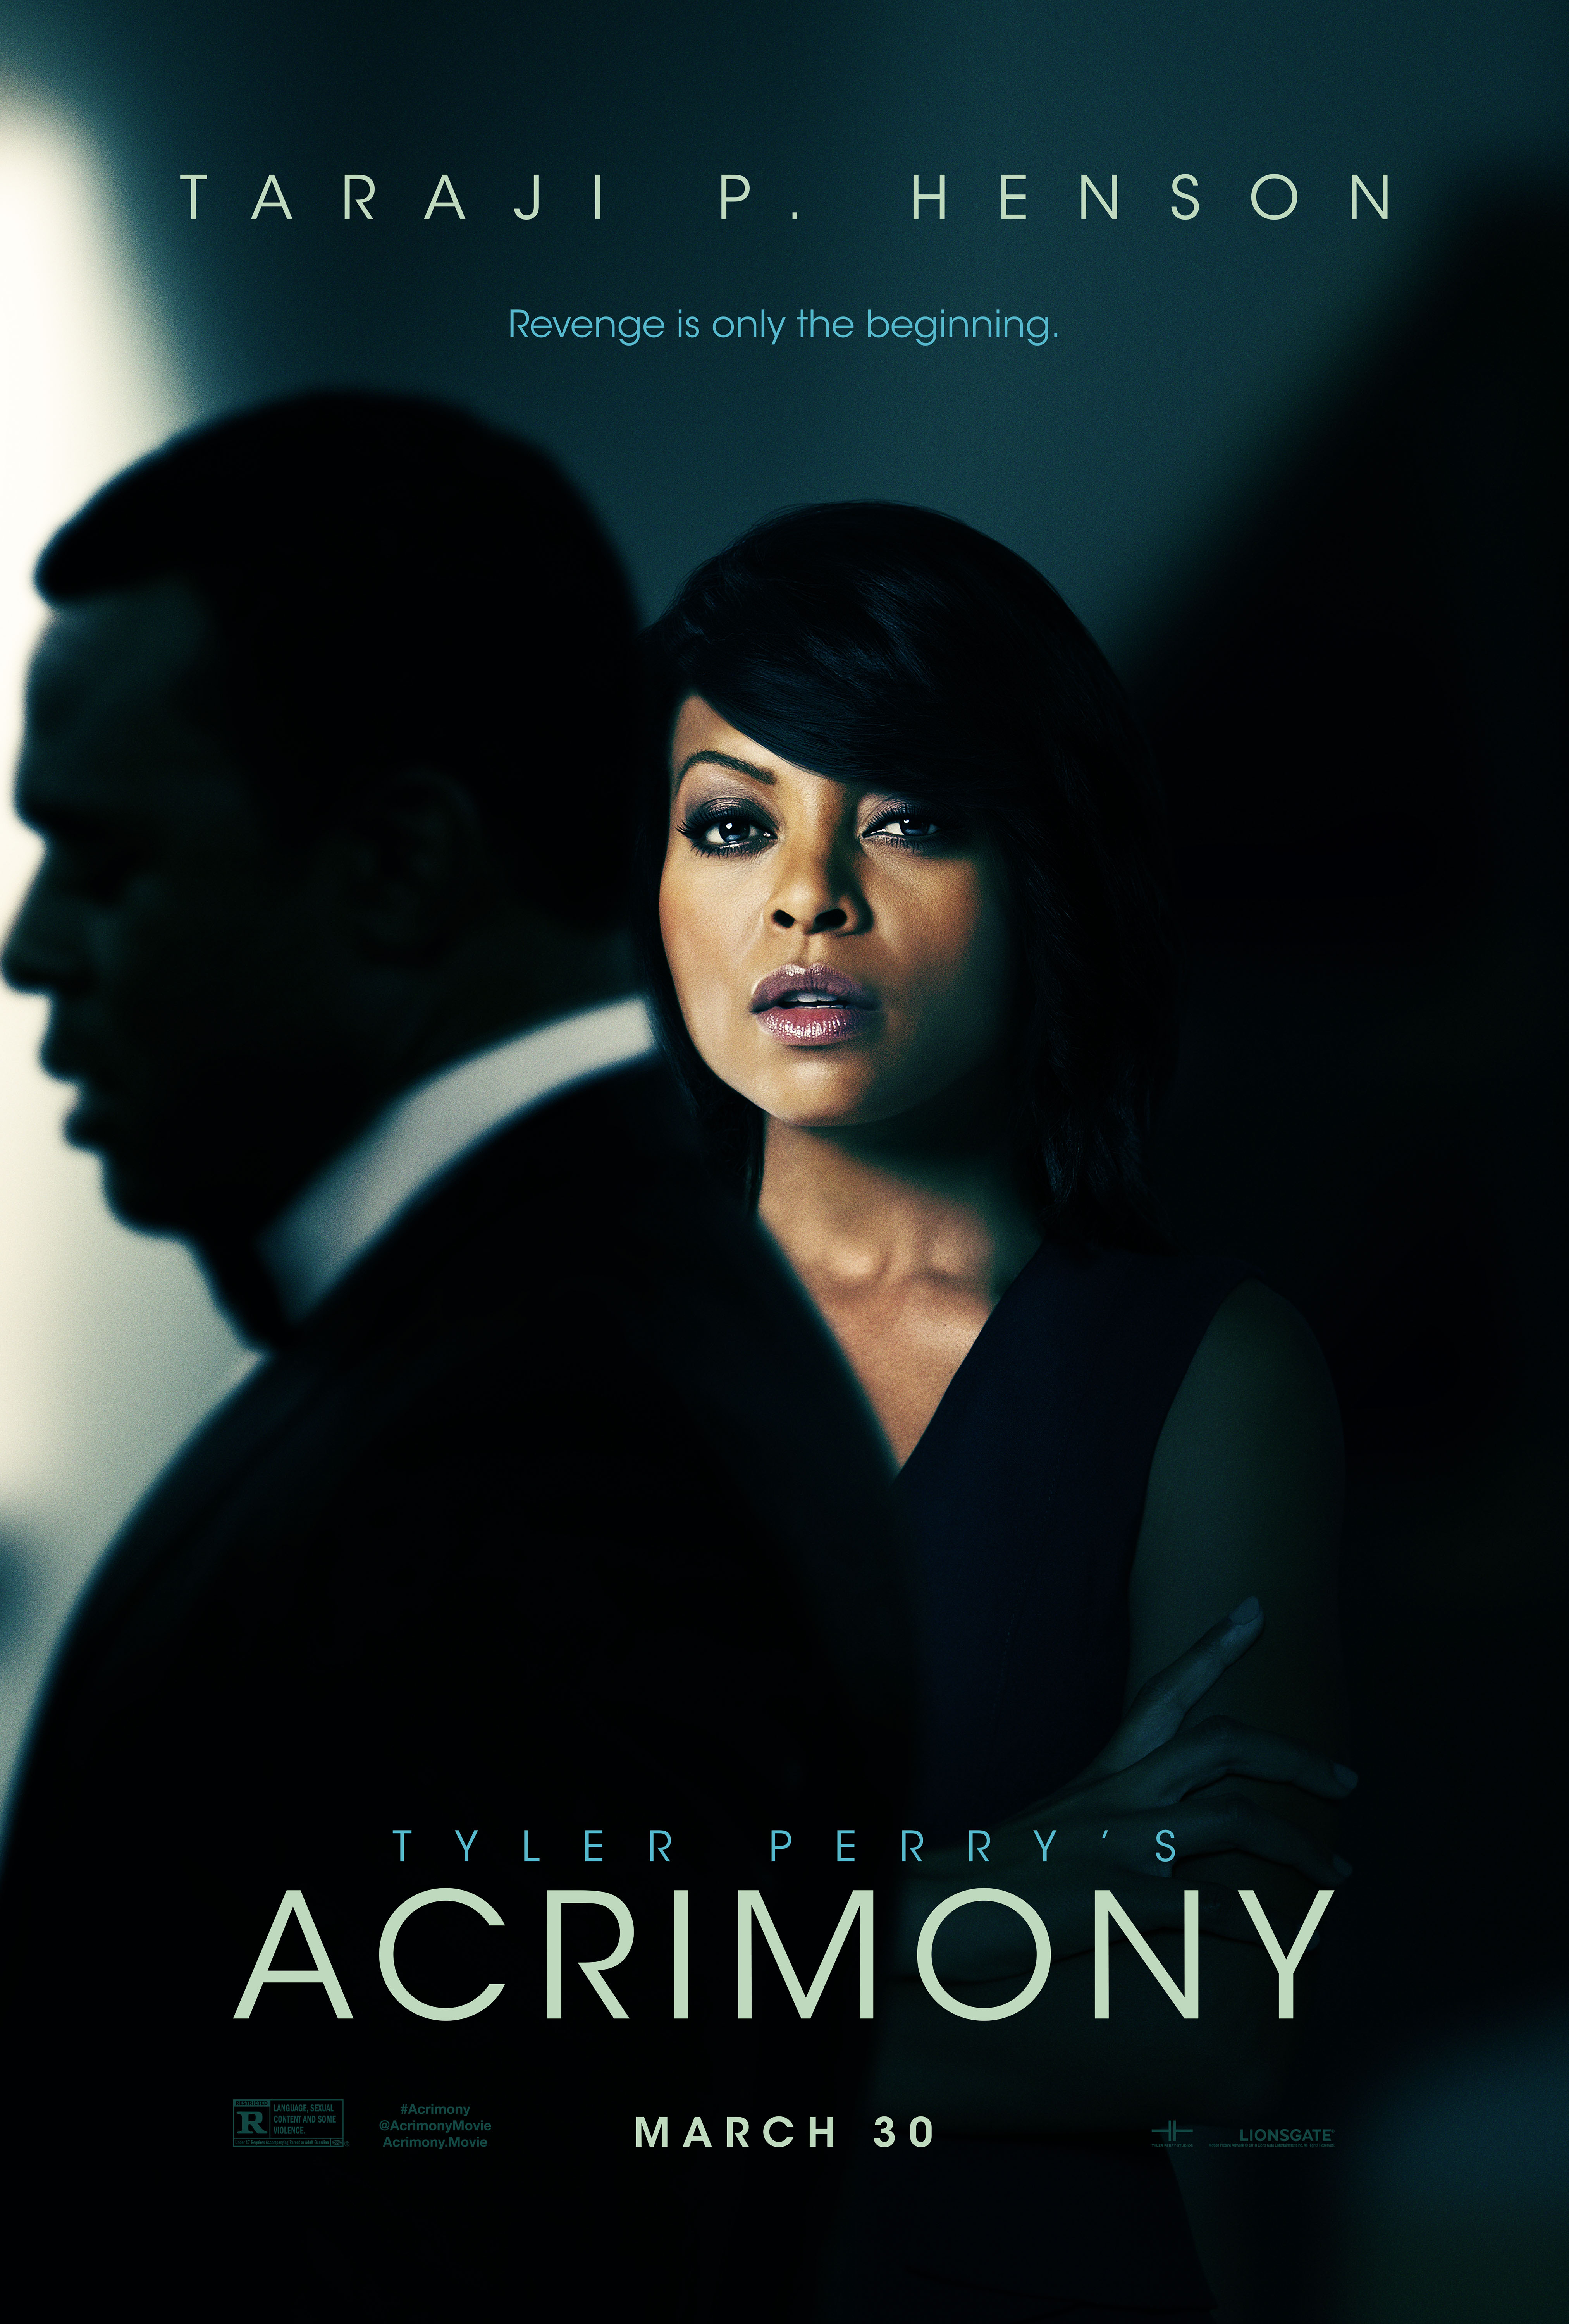 acrimony final trailer released